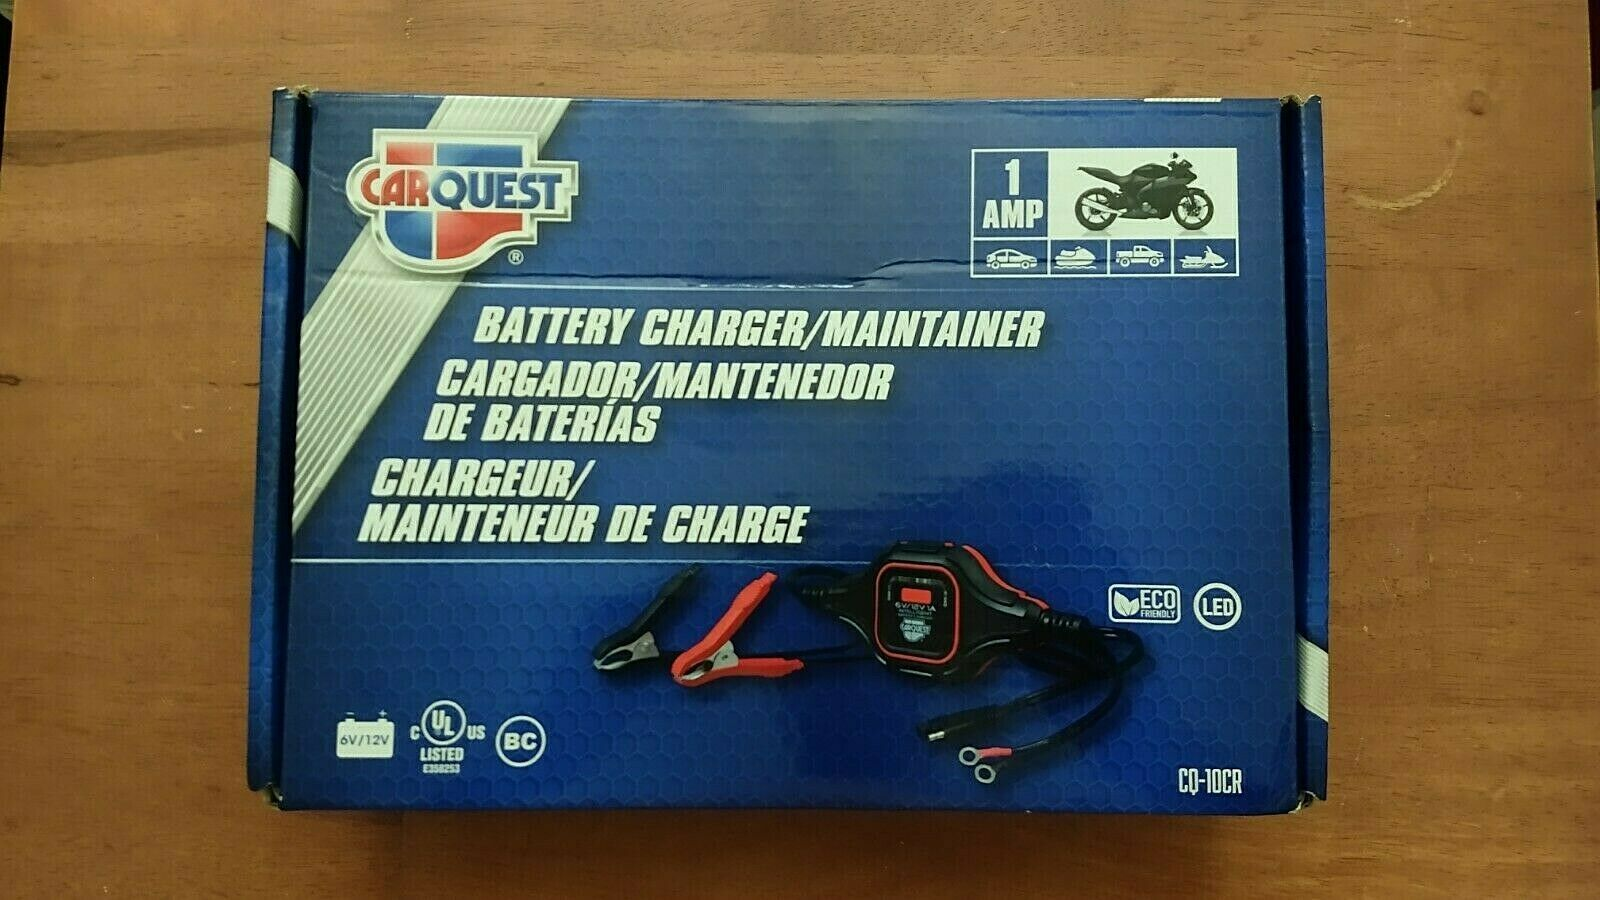 CARQUEST 75 Amp Battery Maintainer Cq 075cr 9a for sale online eBay 1600x900